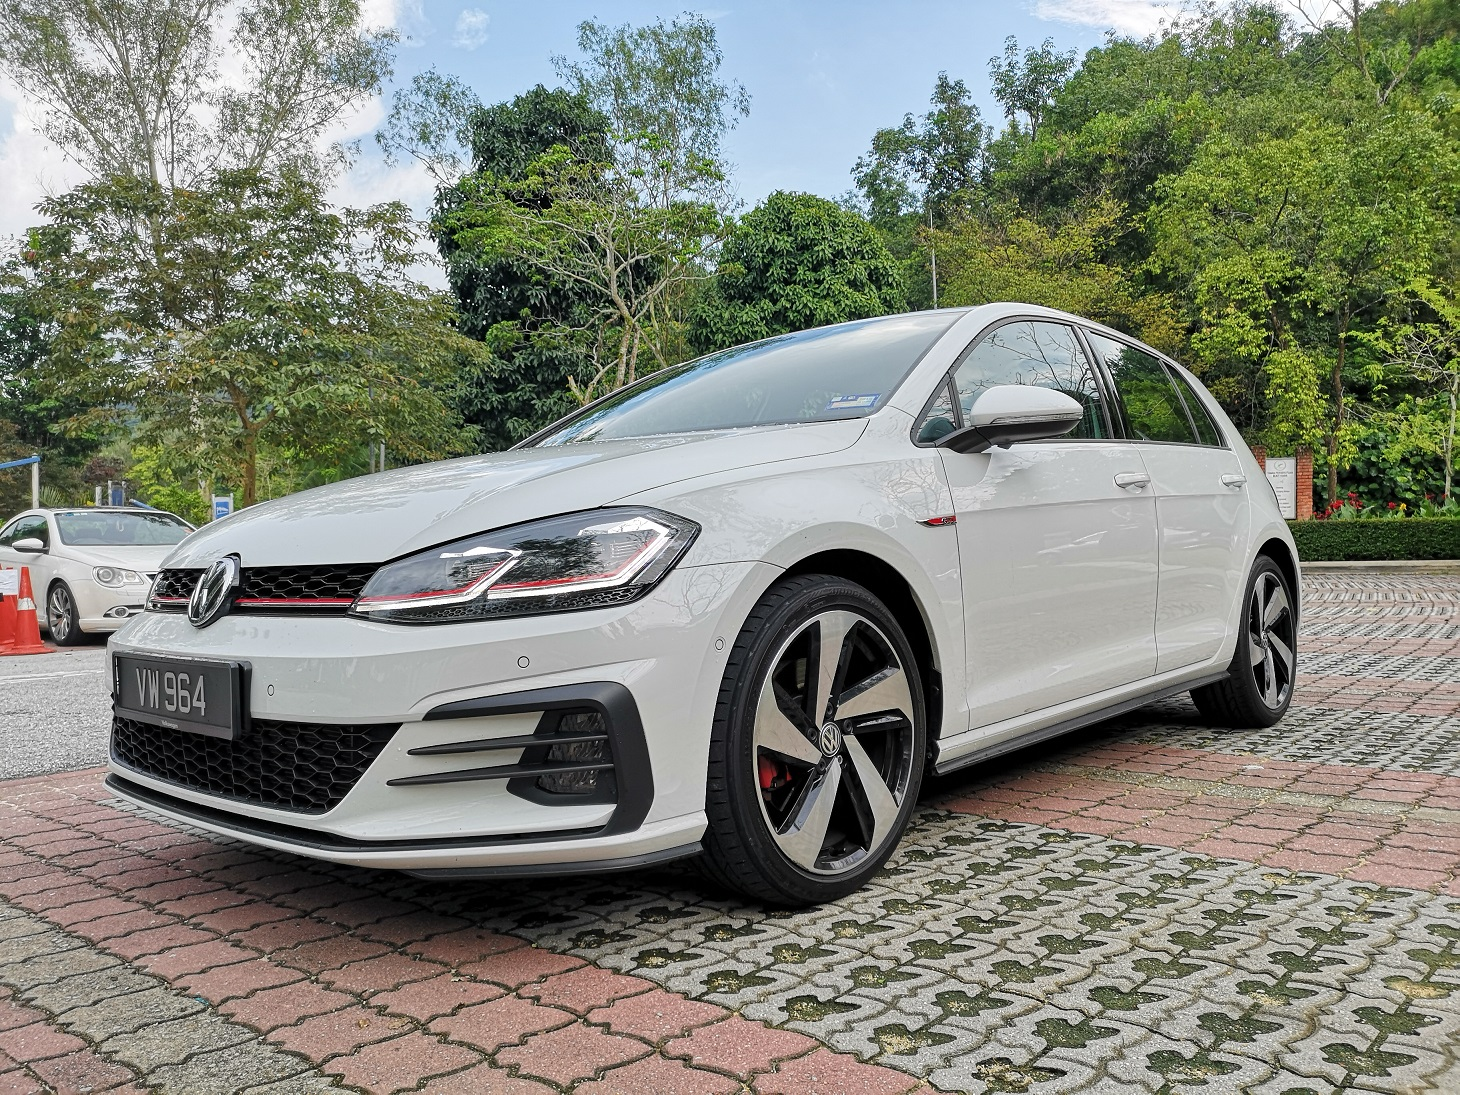 The Volkswagen Mk 7 5 Golf Gti In The Naughty List Kensomuse